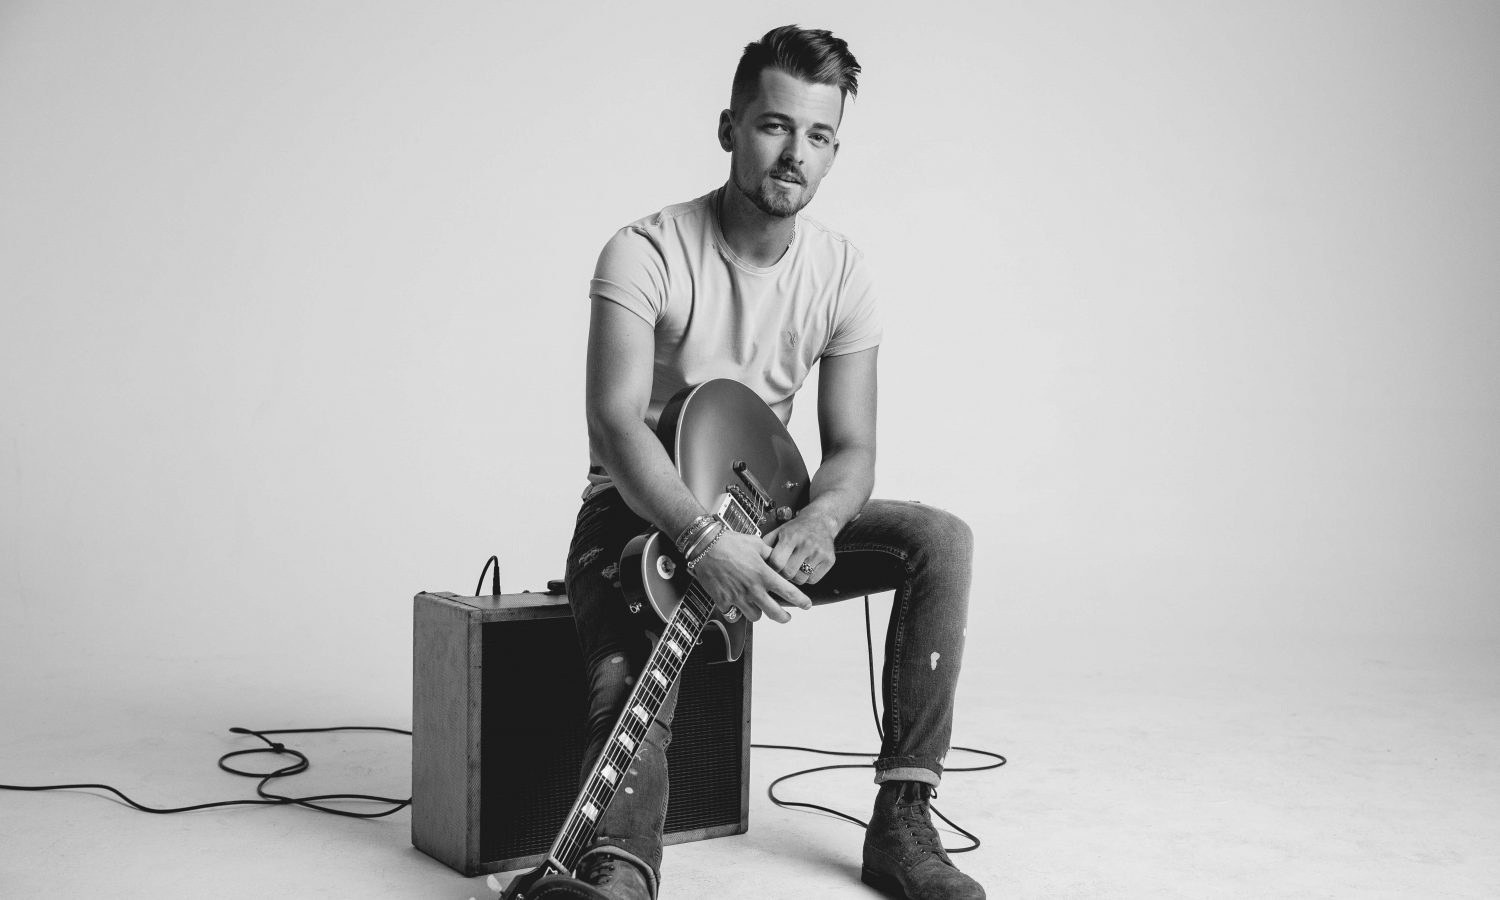 Country music star Chase Bryant to give private concert for Concordia students, alumni, and employees